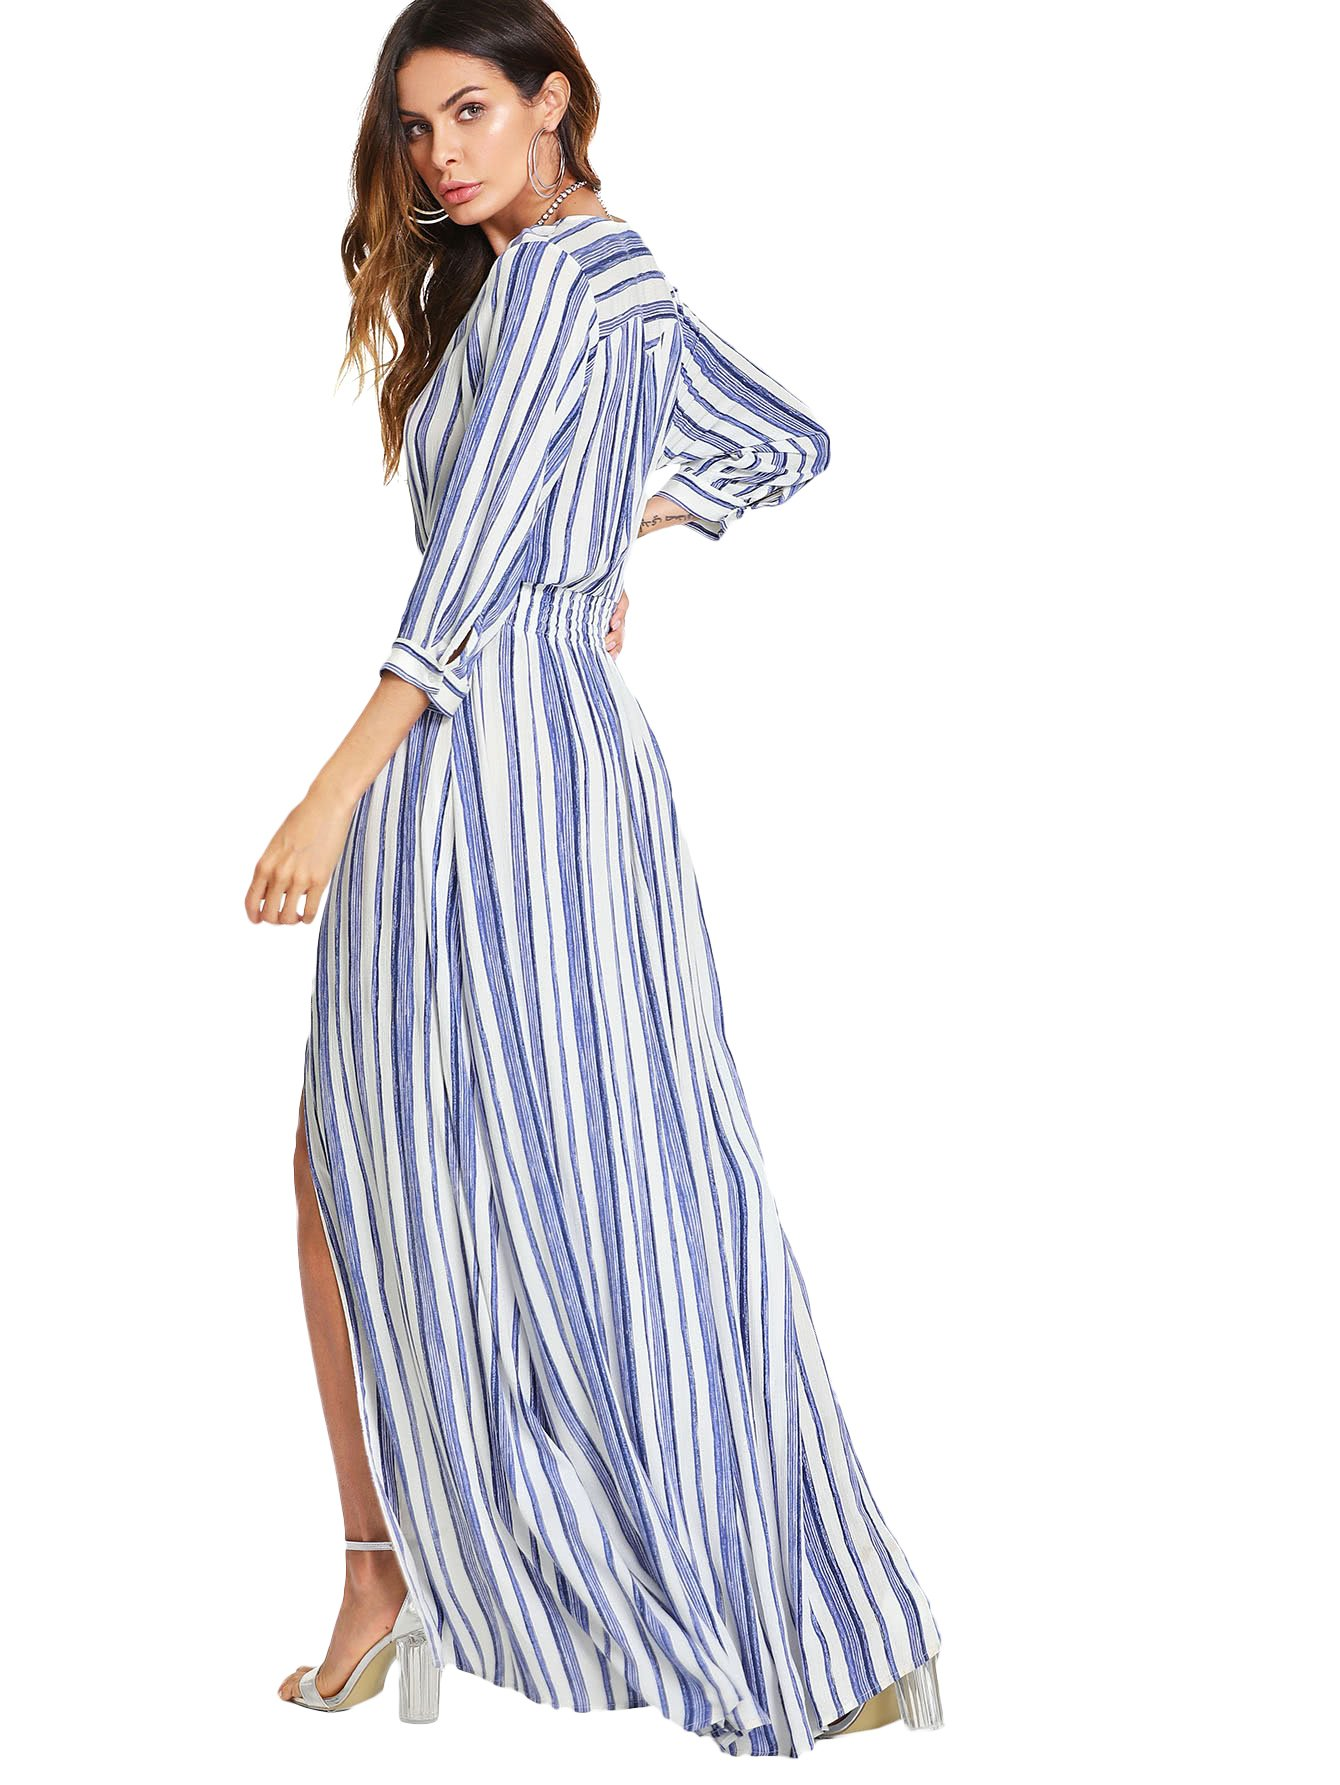 Milumia Stripe Dress, Women Smocked Waist 3 4 Sleeves Button up Summer Chic Blue and White S by Milumia (Image #2)